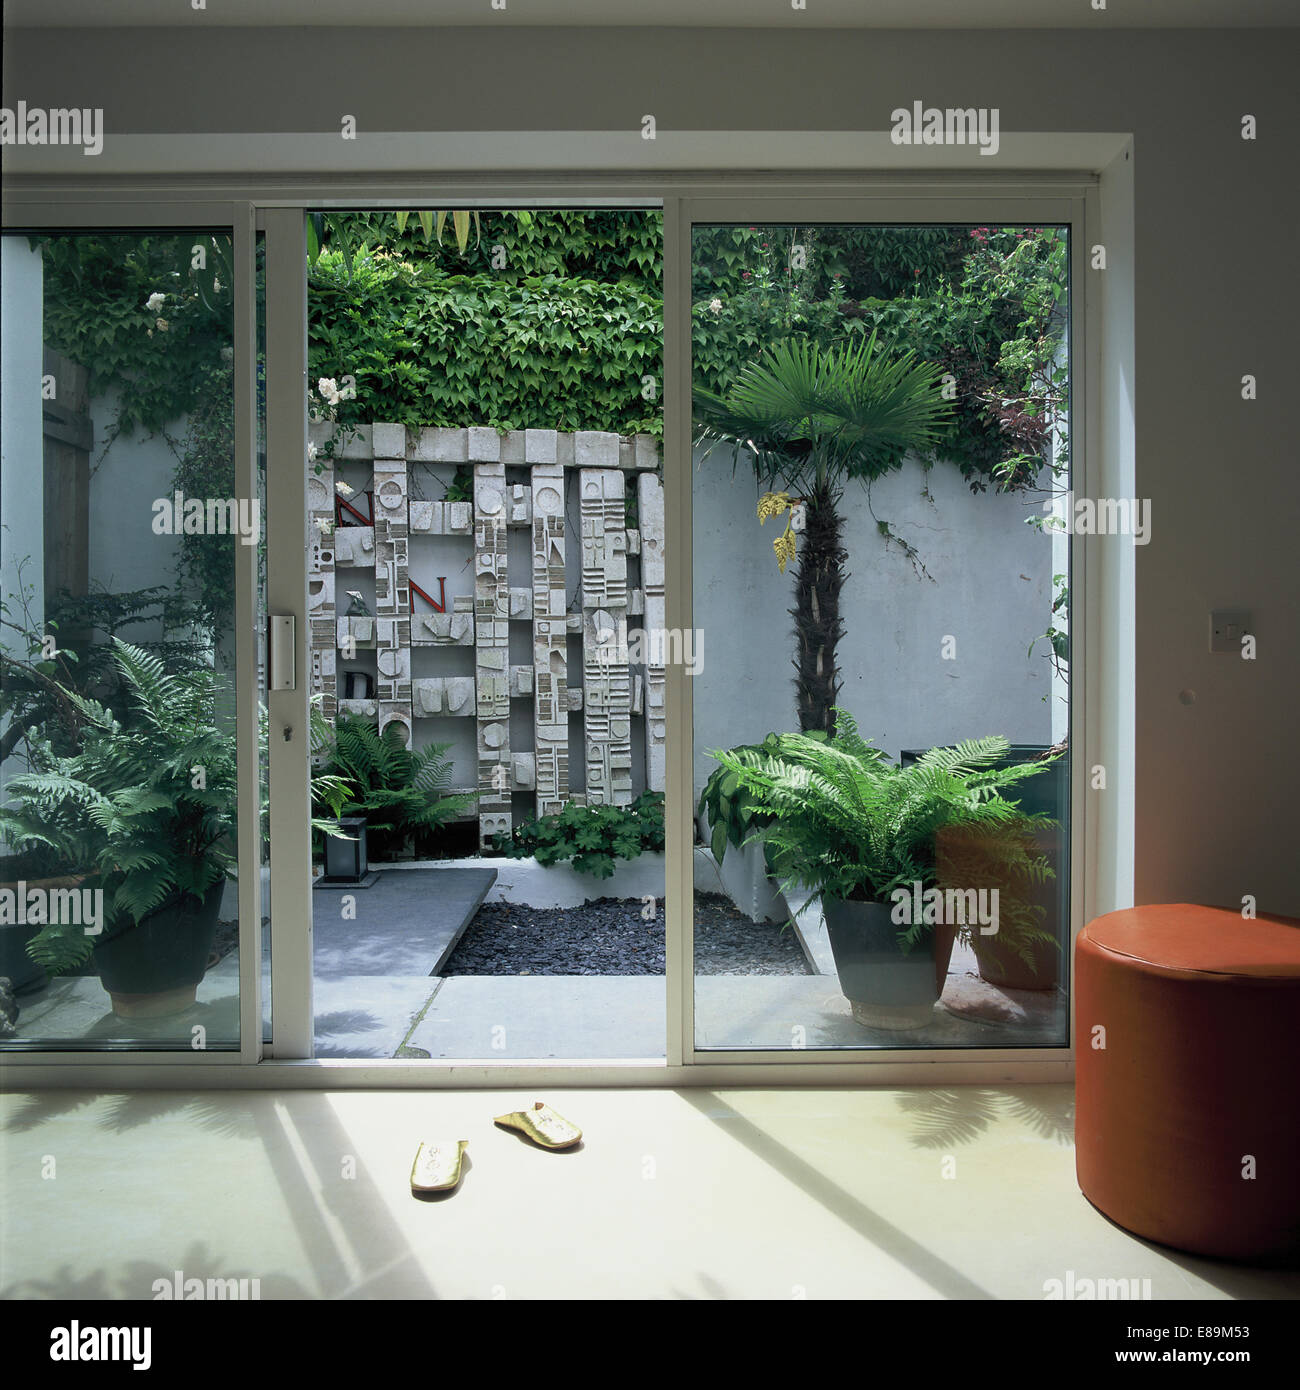 Marvelous Stock Photo   View Through Glass Patio Doors To Courtyard Garden With Wall  Sculpture